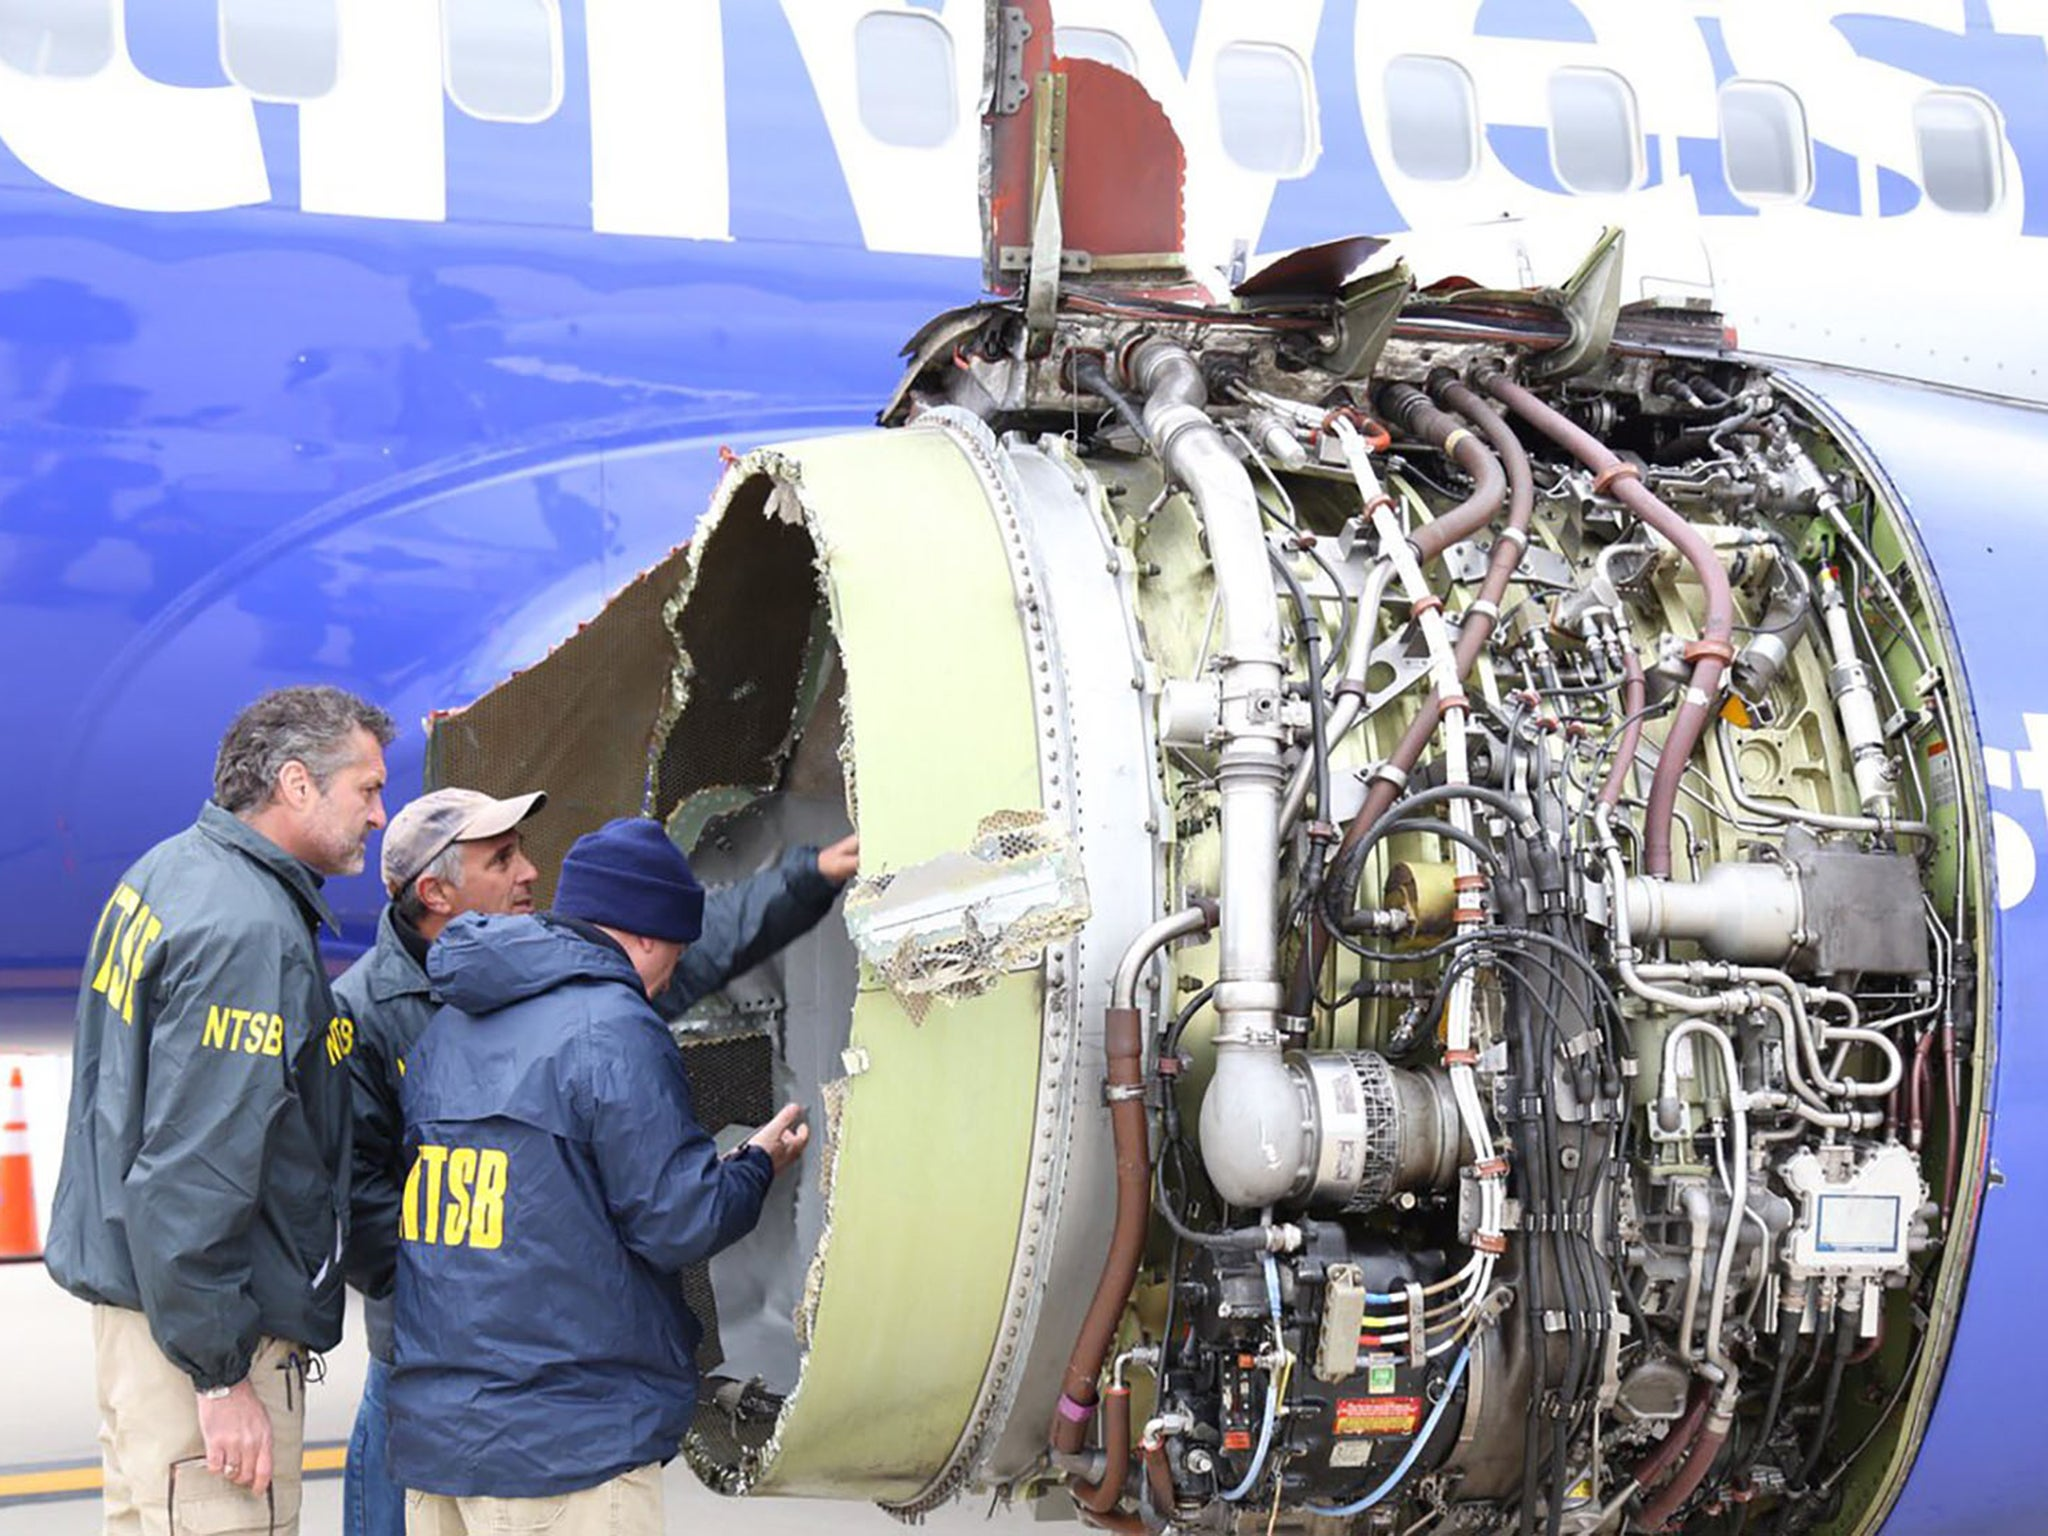 Boeing 737 NG: Everything you need to know about aircraft 'vulnerability' after woman sucked out of window in fatal accident